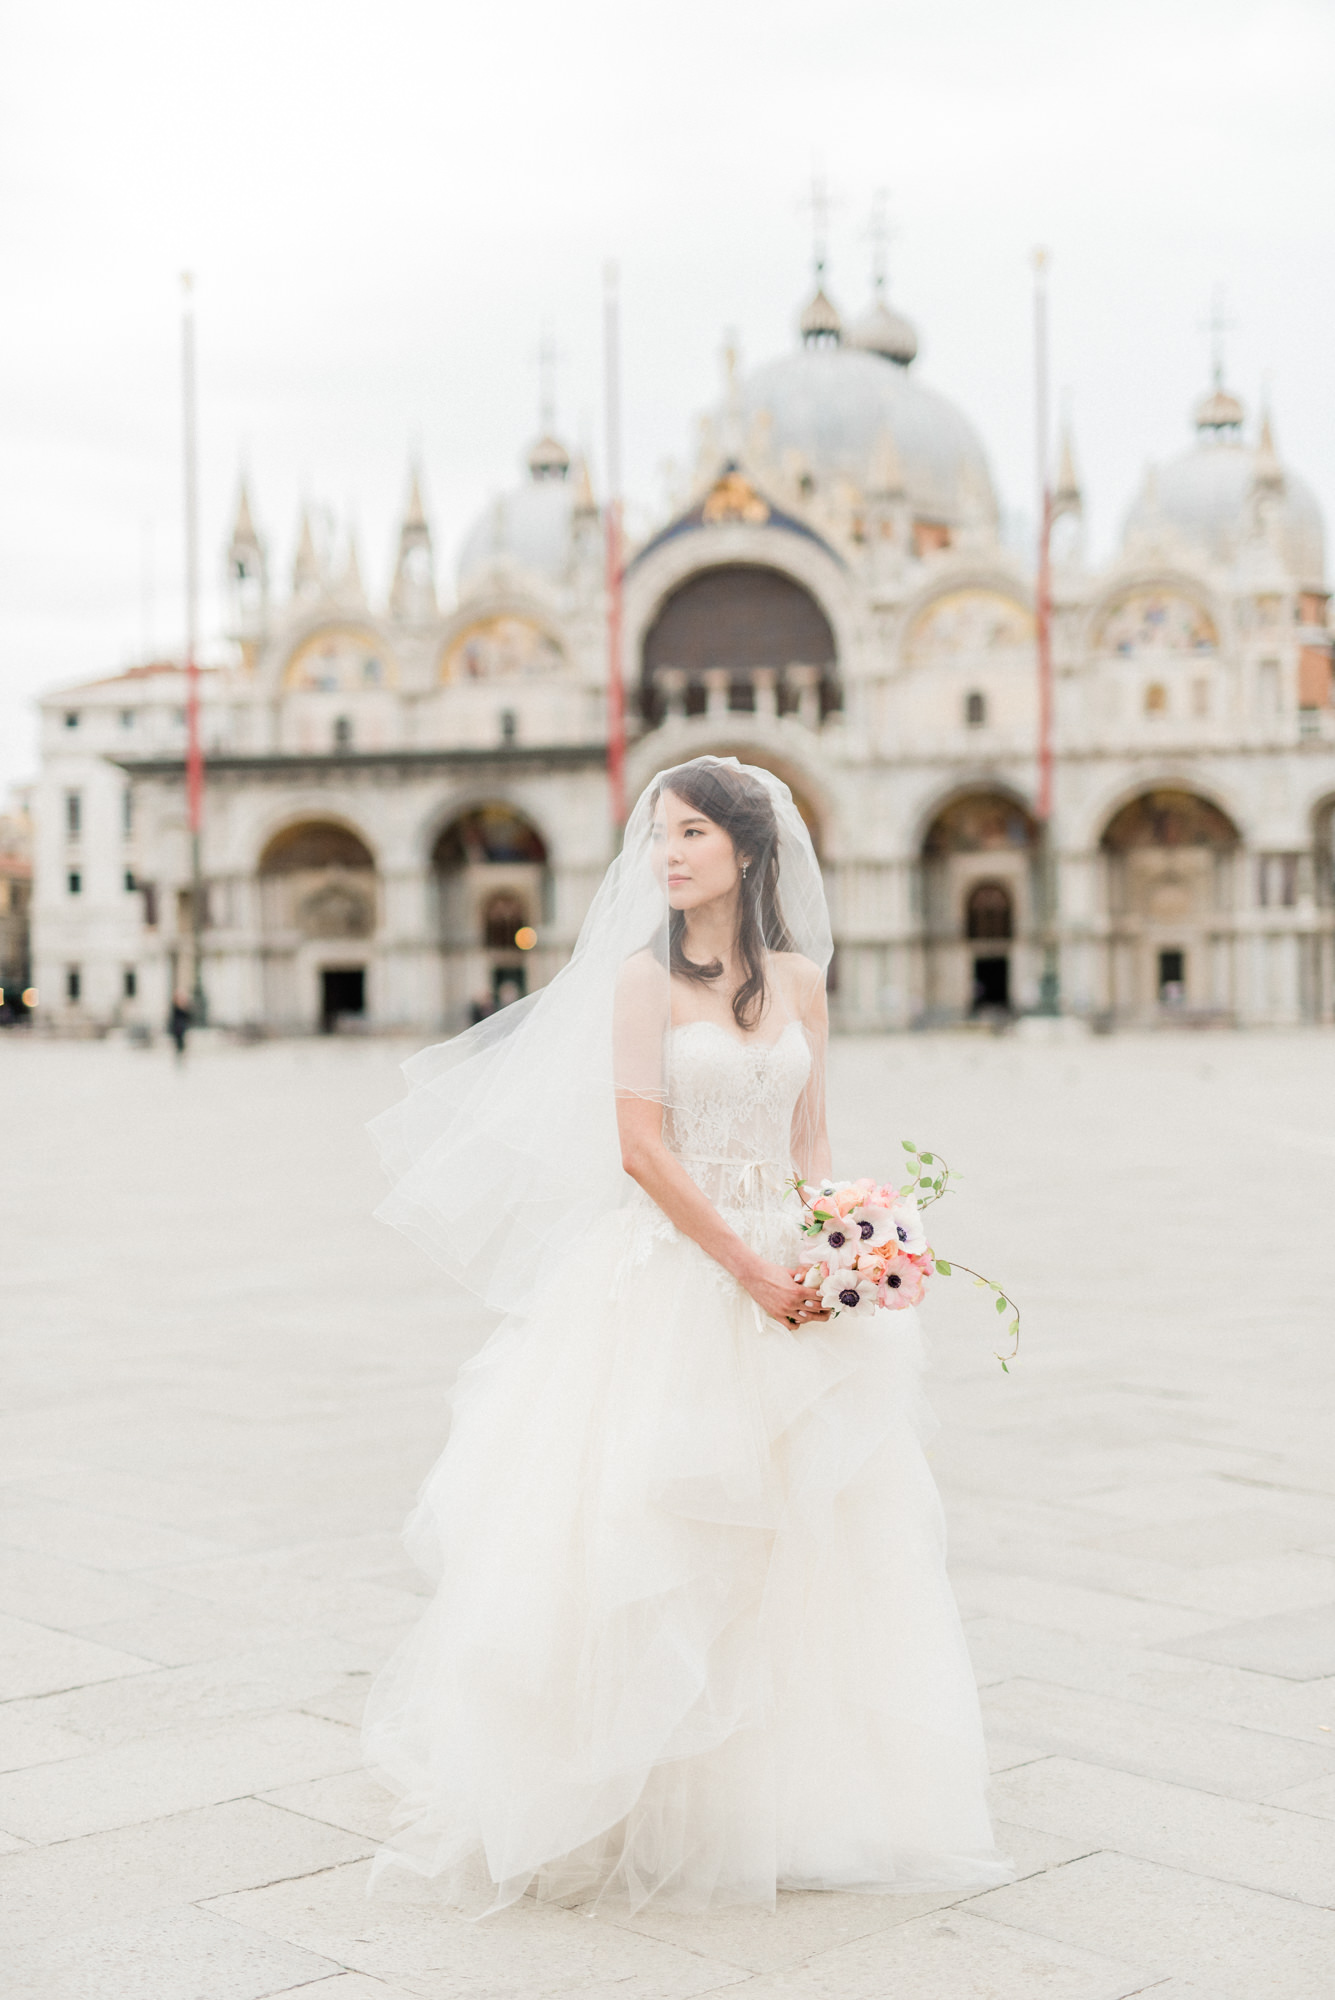 Bride in veil shot wearing a strapless lace gown, by Gianluca Adovasio